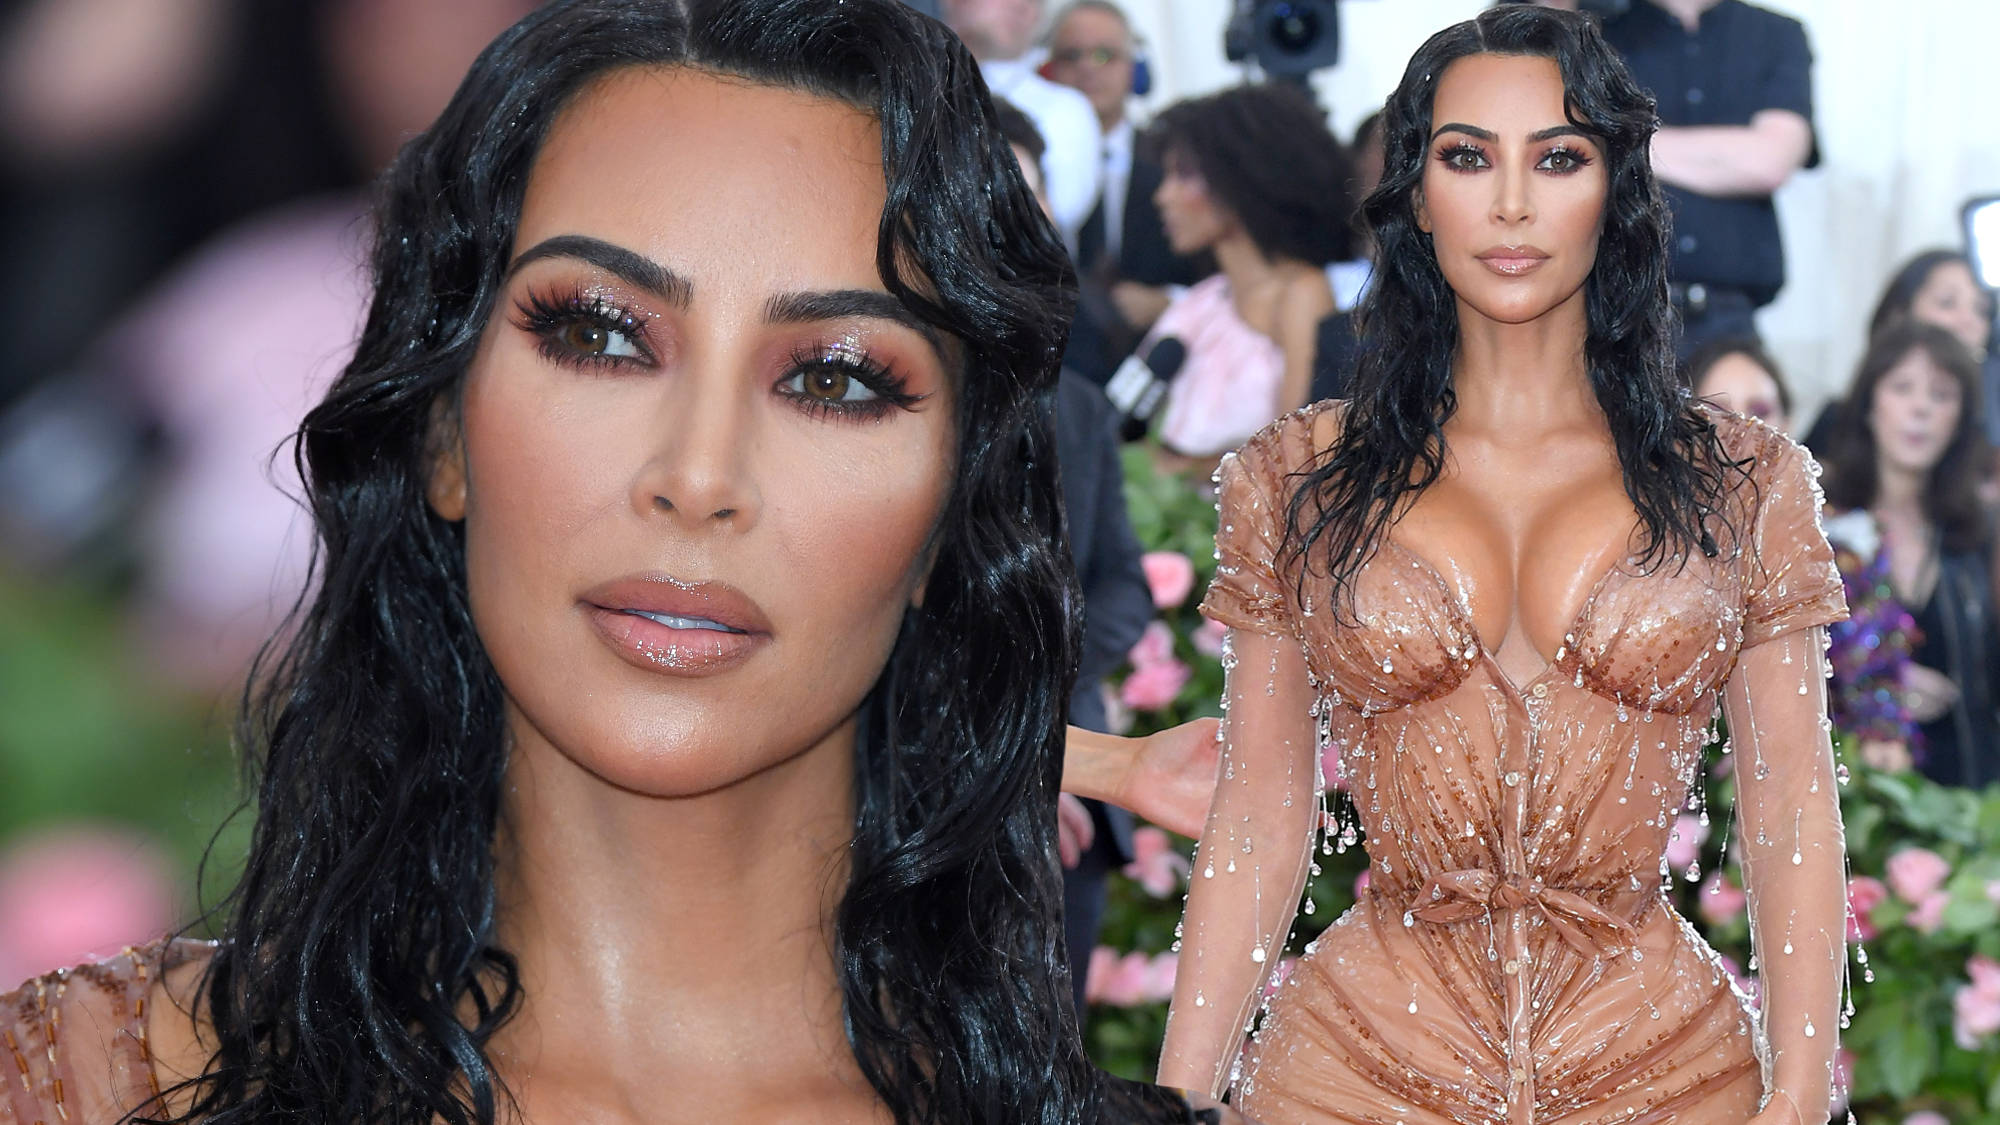 """Kim Kardashian's Controversial Met Gala Dress Caused Her Pain She's """"Never Felt In Her Life"""""""